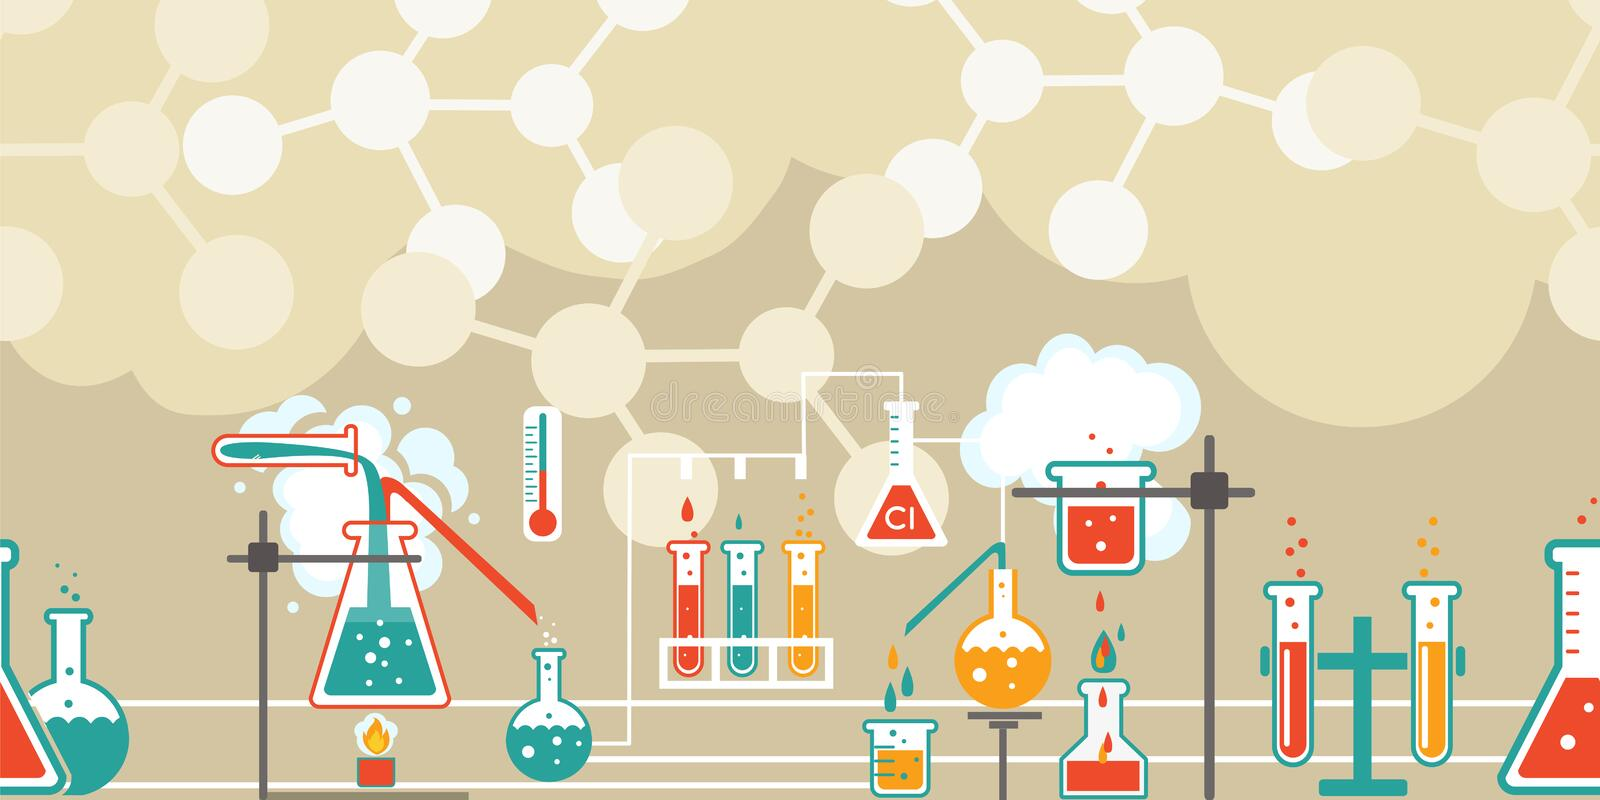 Chemistry infographic in a seamless pattern royalty free illustration